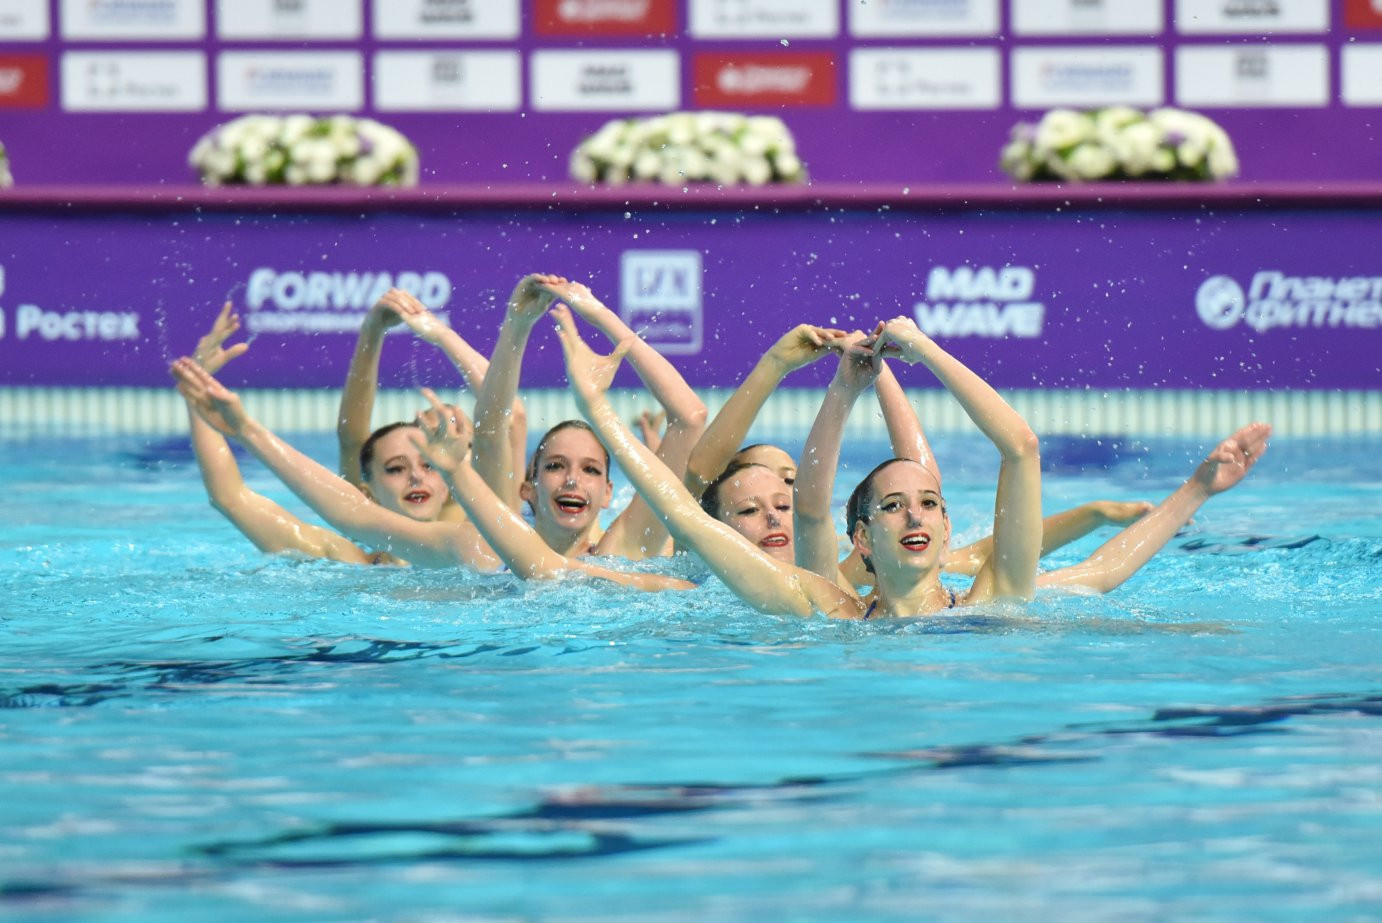 Russia won the team free event at the FINA Artistic Swimming World Series in Kazan ©FINA